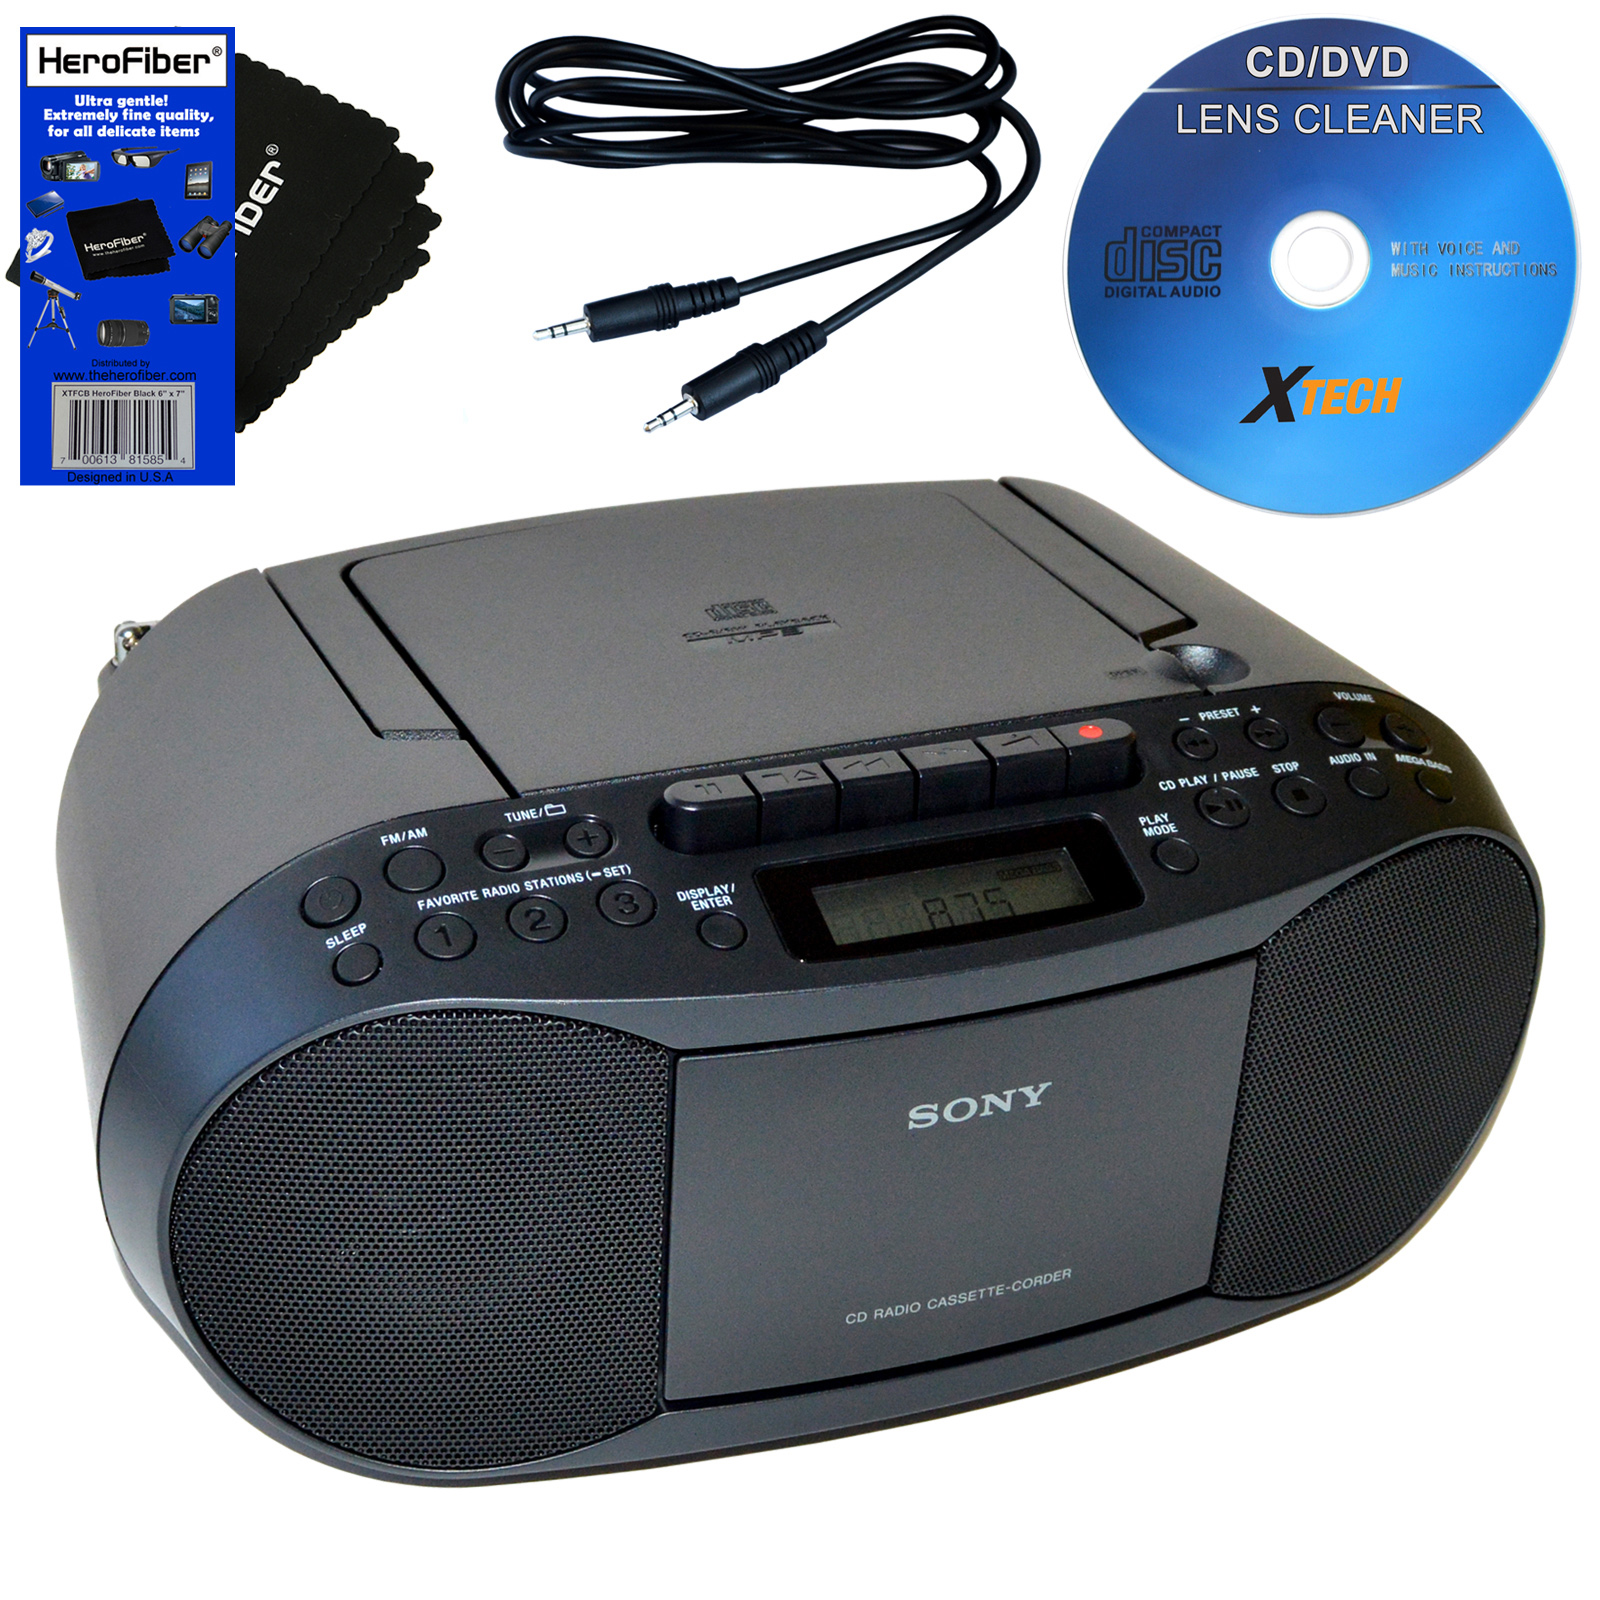 Sony CD Radio Cassette Recorder Boombox Bundled With AC Power Auxiliary Cable For IPods, IPhones, Smartphones, MP3 Players, Xtech CD Lens Cleaner & HeroFiber Ultra Gentle Cleaning Cloth